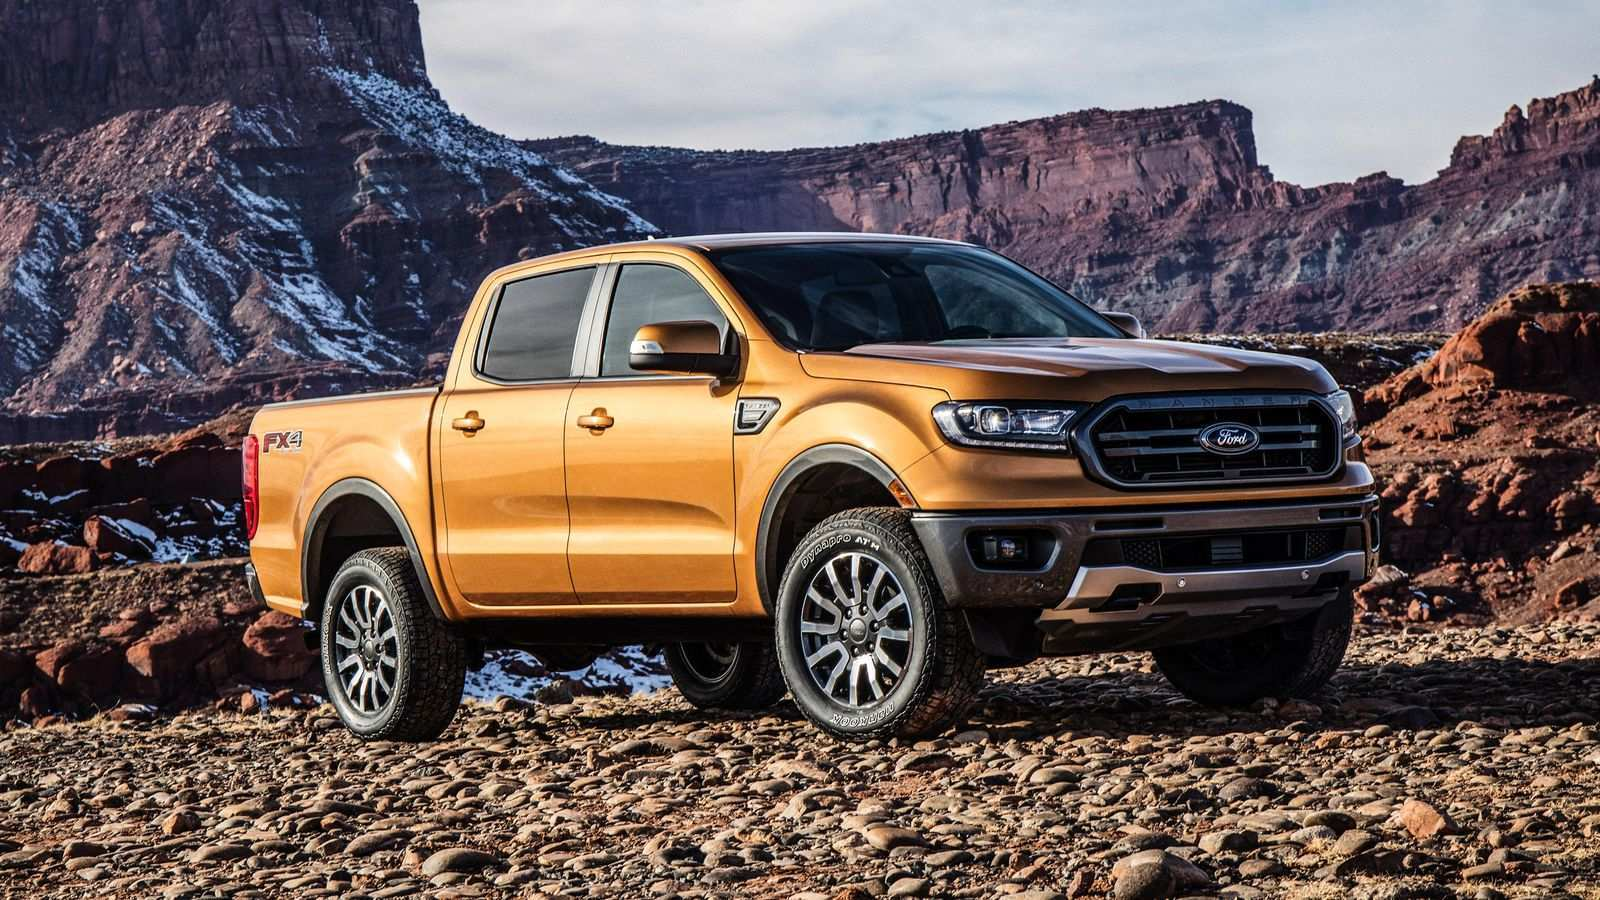 85 Great 2020 Ford Ranger Usa Research New for 2020 Ford Ranger Usa